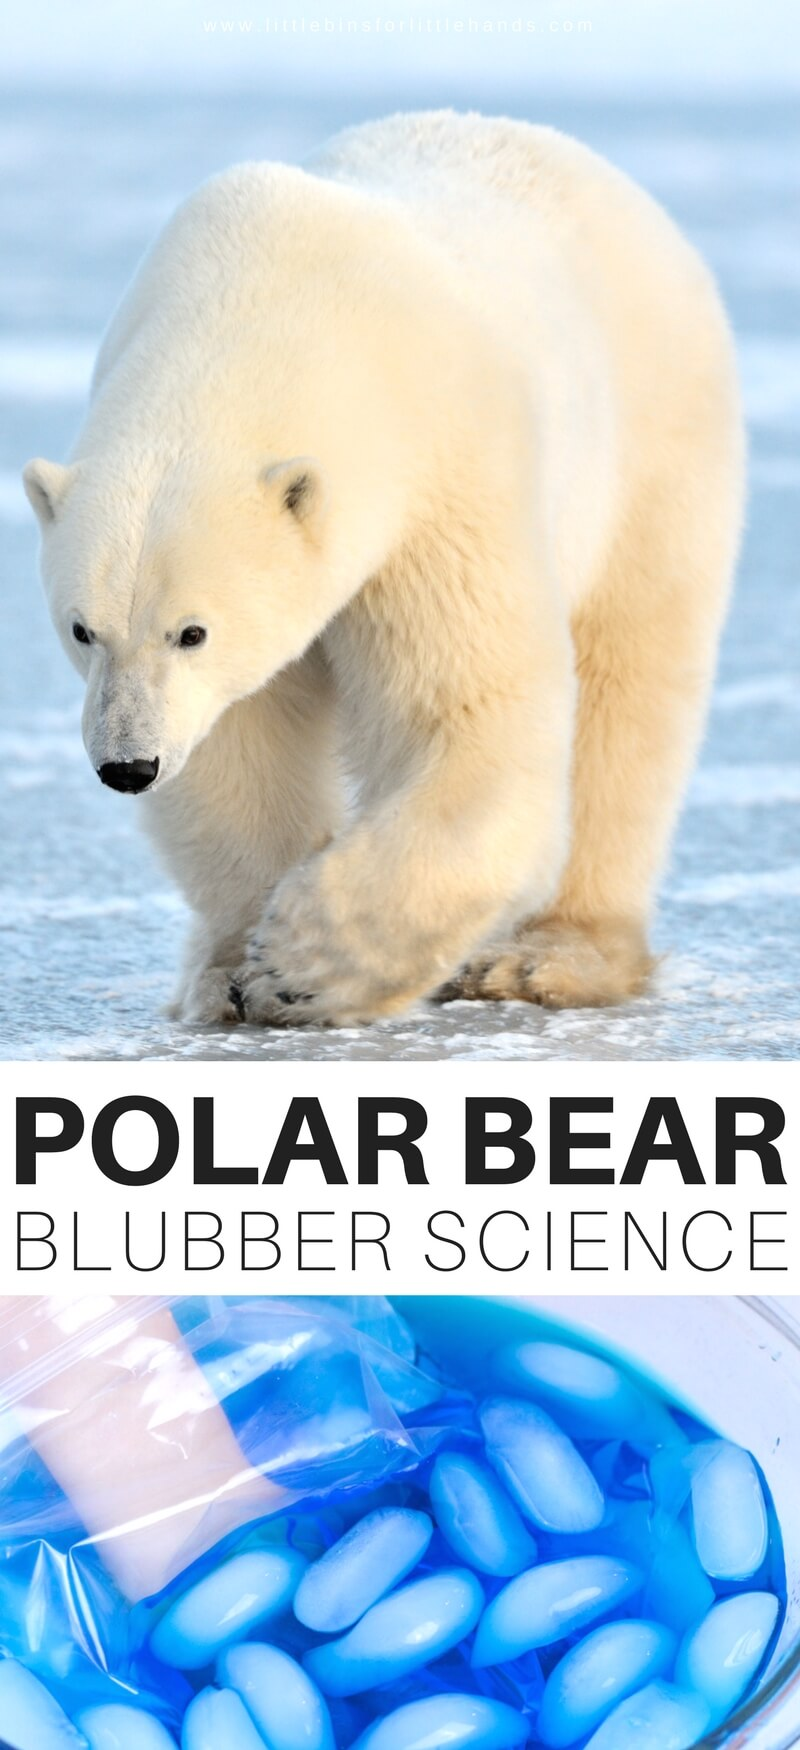 polar bear facts for kids printable image of bear and